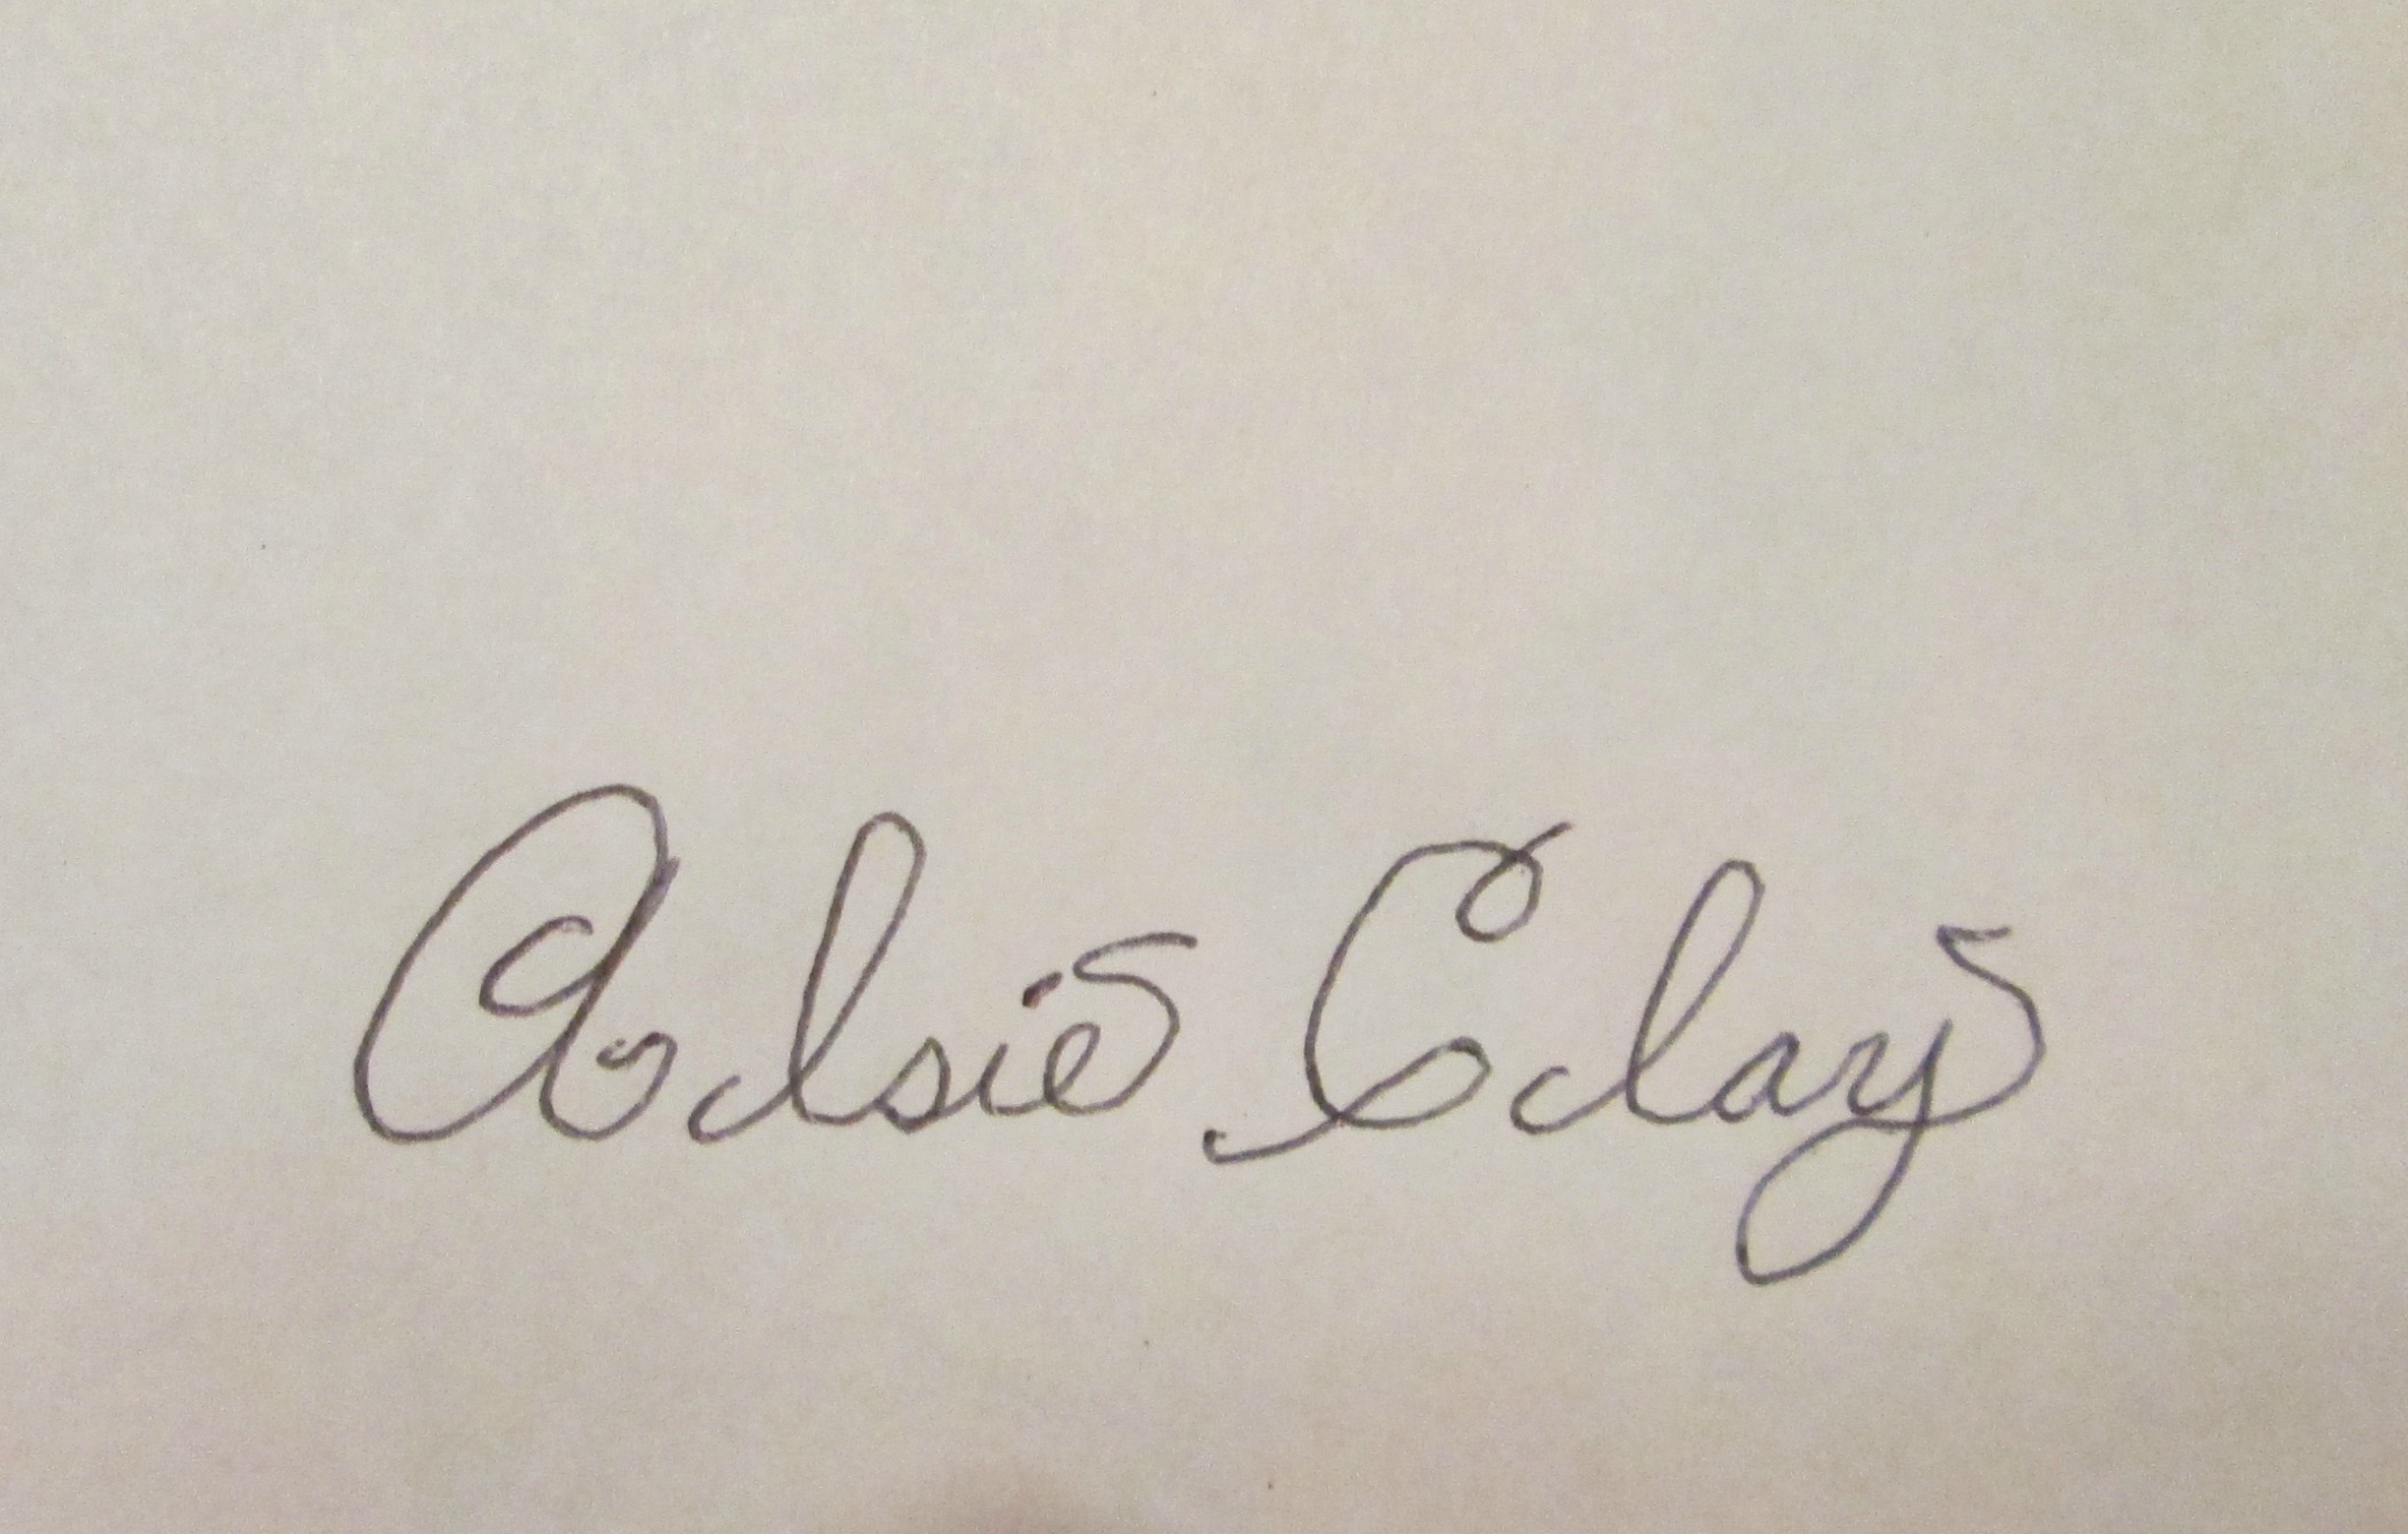 Alsie Clay's Signature